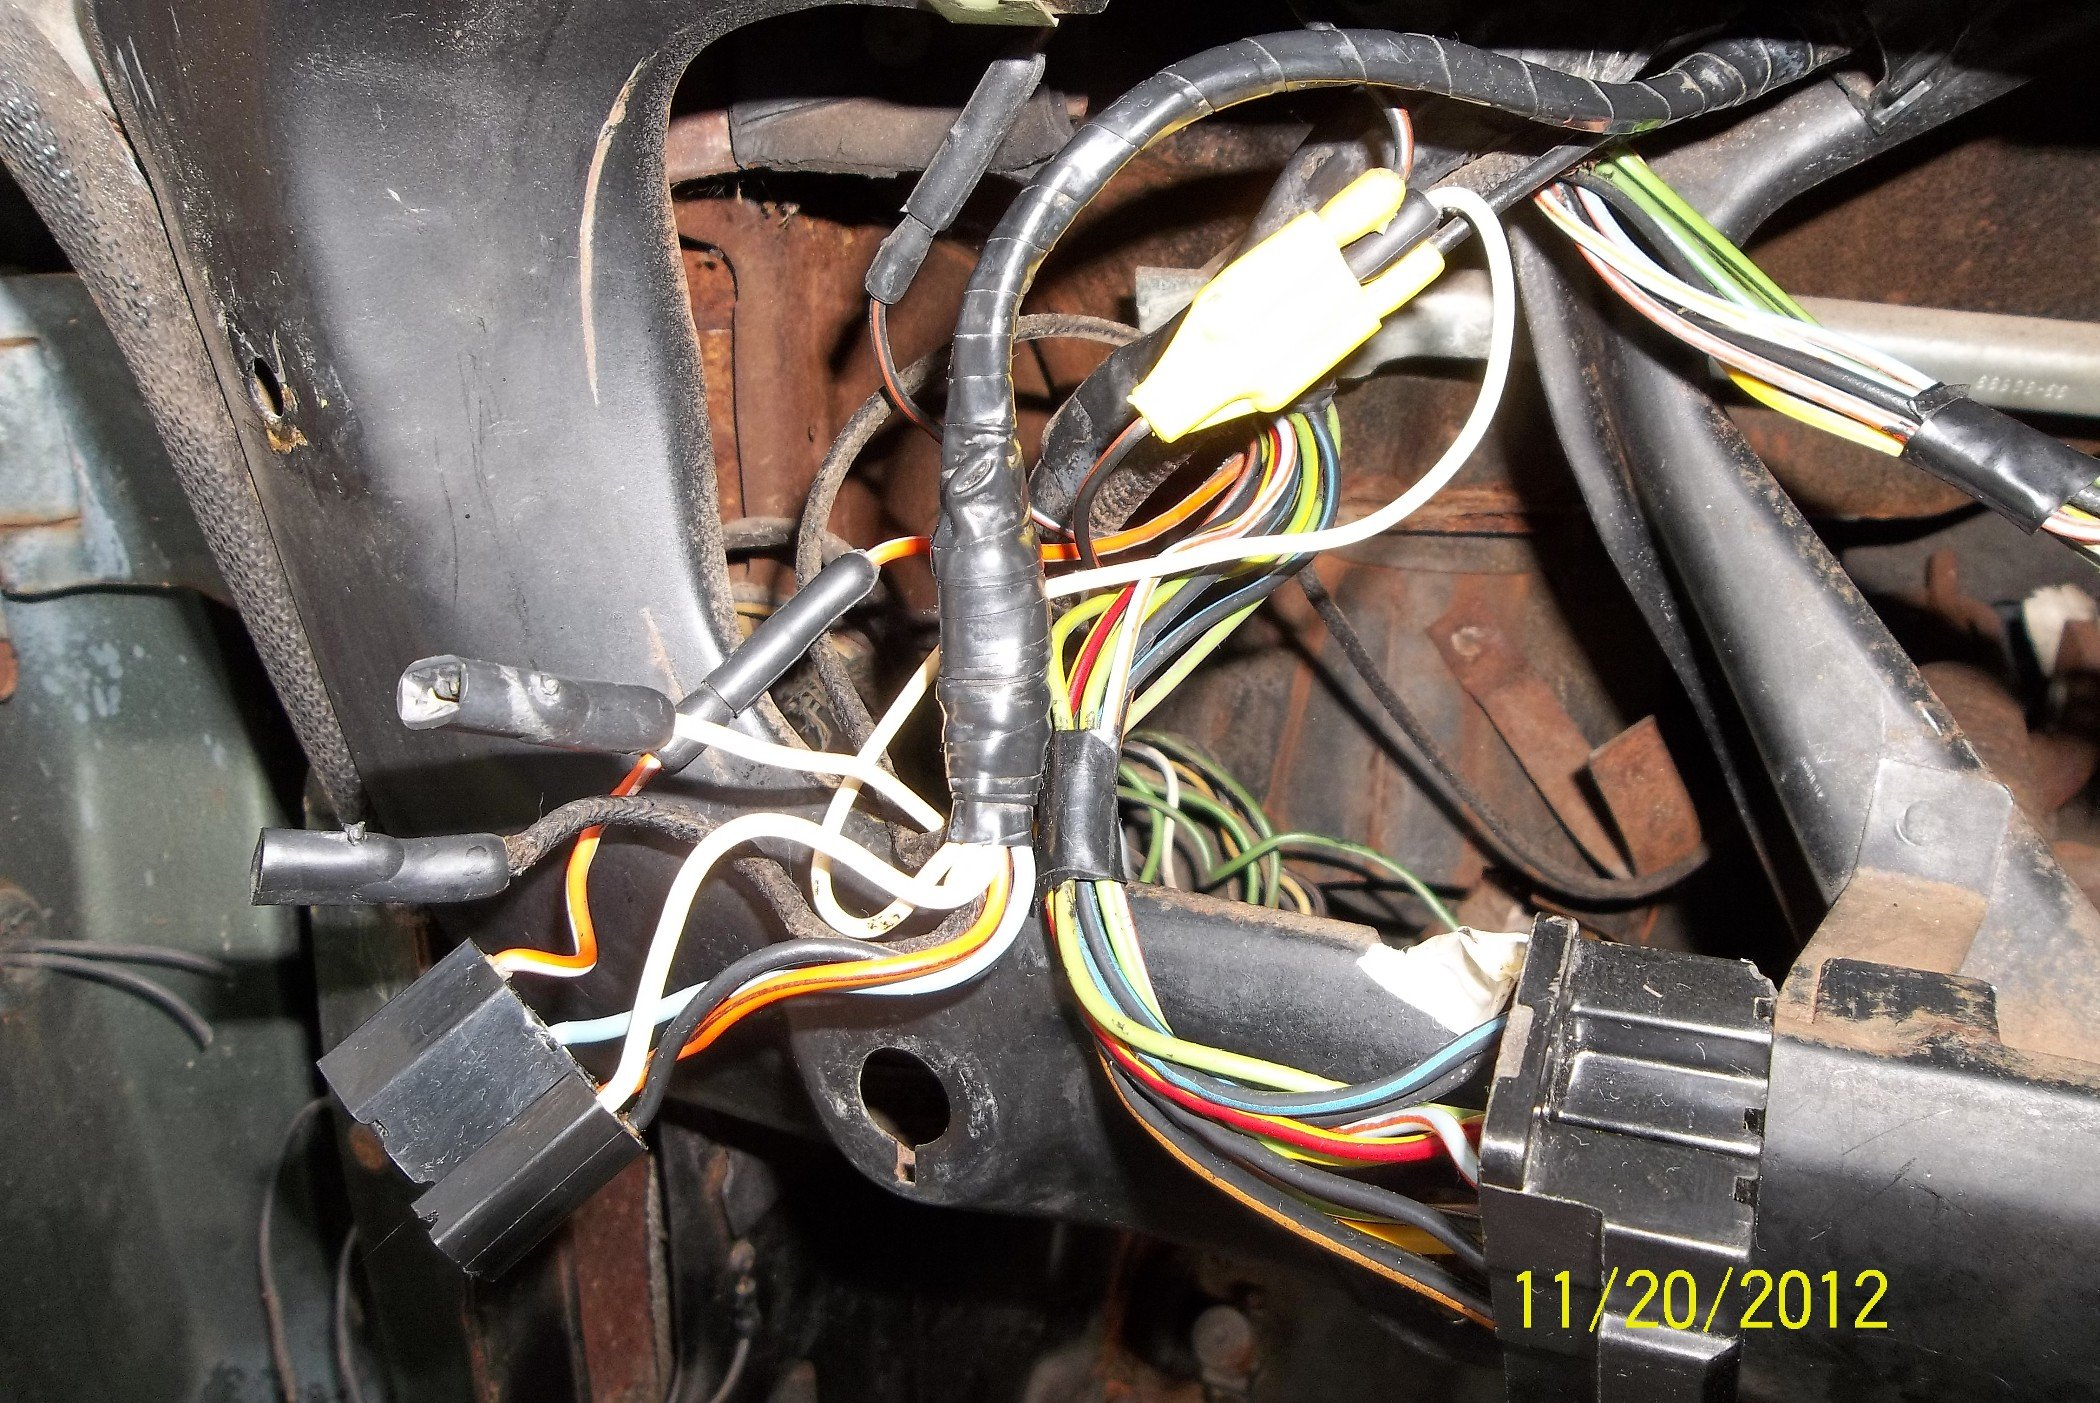 D Single Speed Wiper W Washer Pump Wiring Problems Left Side Inst Panel on 1968 Mustang Wiring Diagram